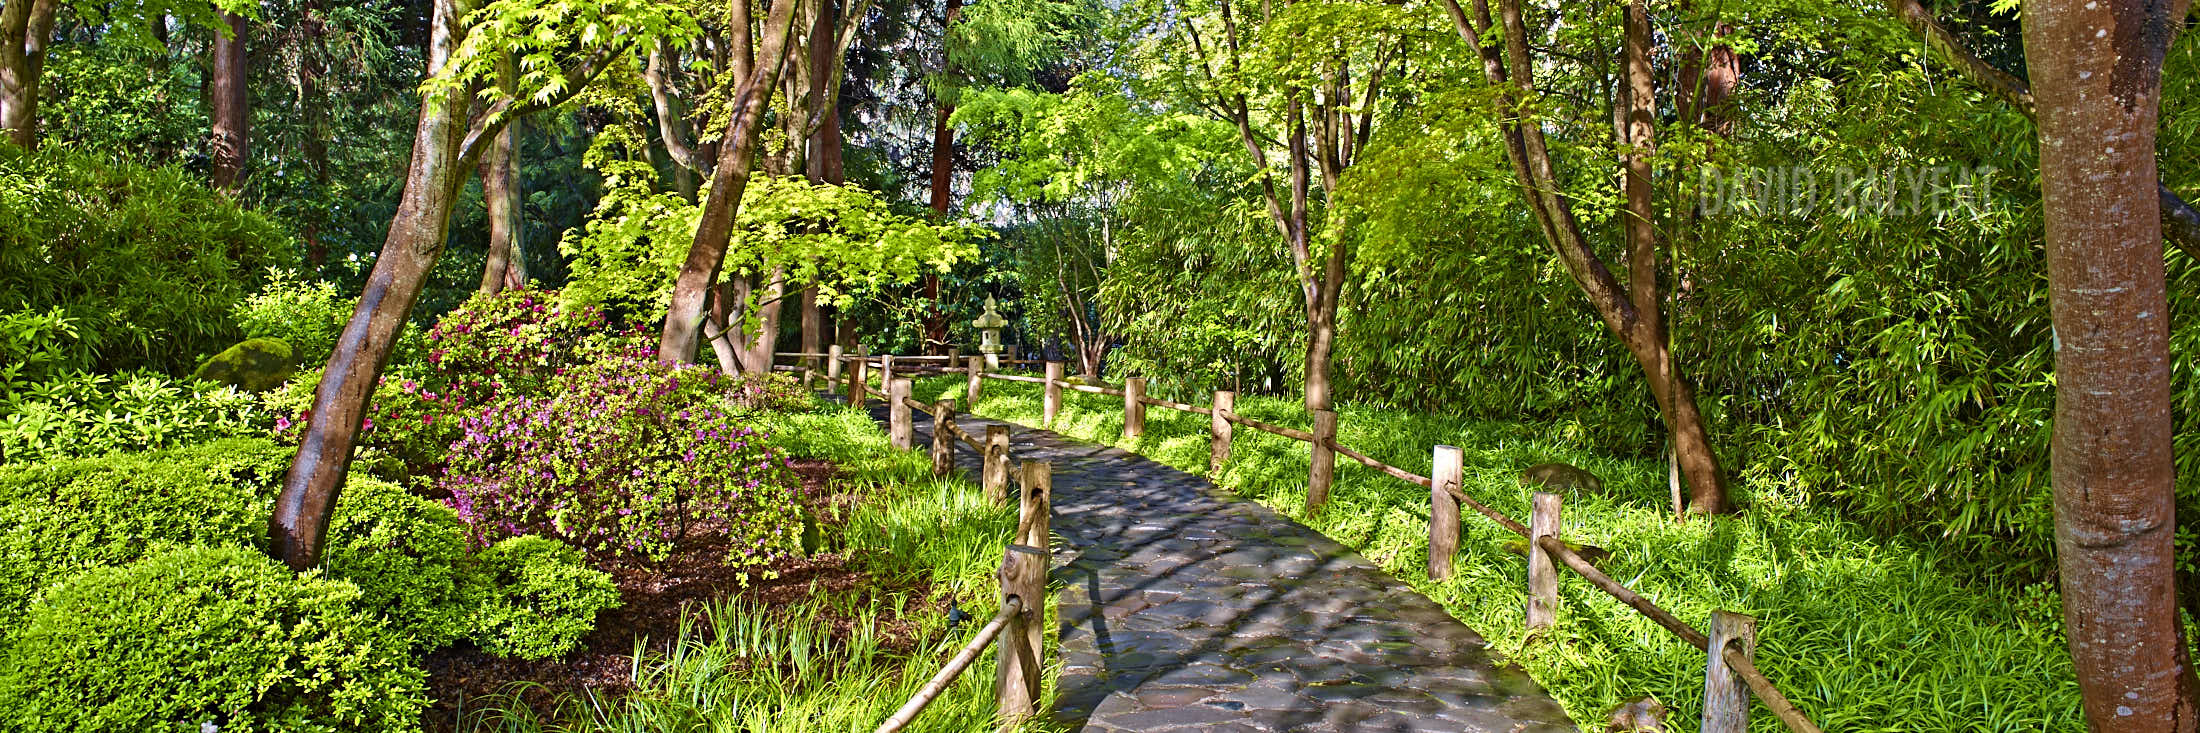 San Francisco Botanical Garden Stroll Zen high-definition HD professional landscape photography